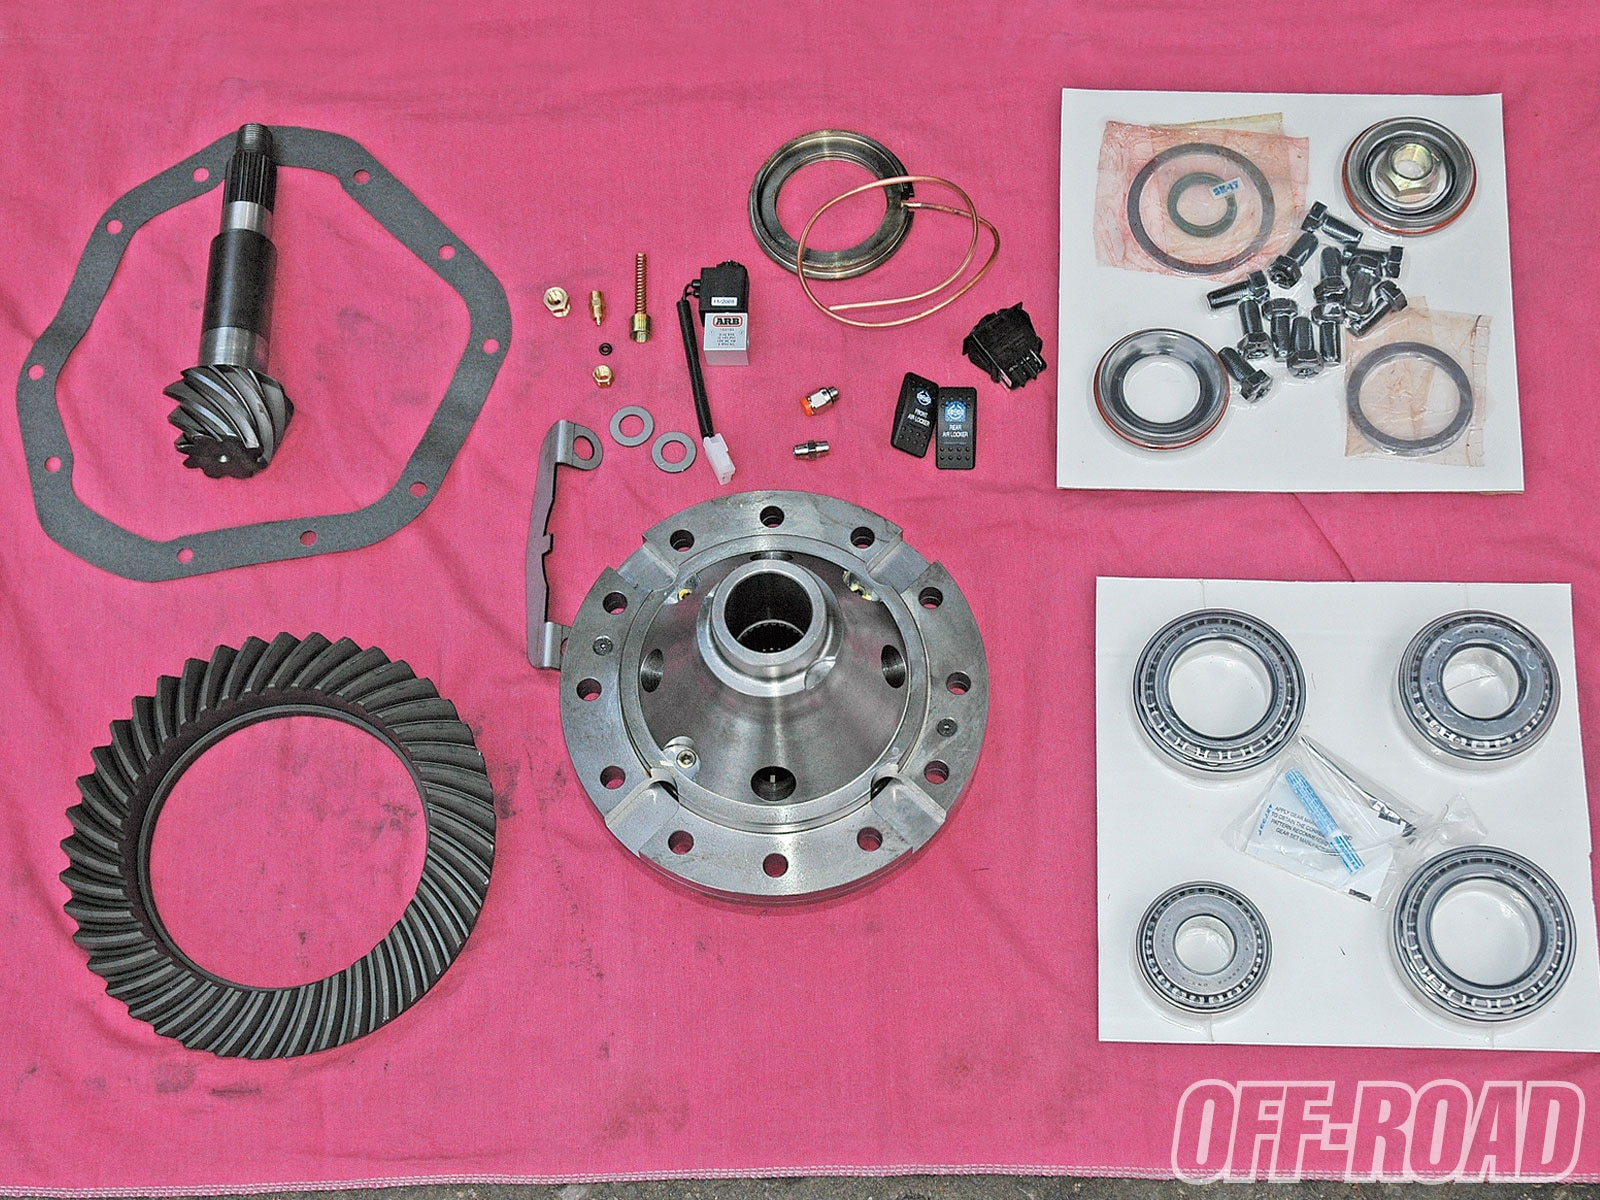 1005or 09 +front and rear axle build+differential kit